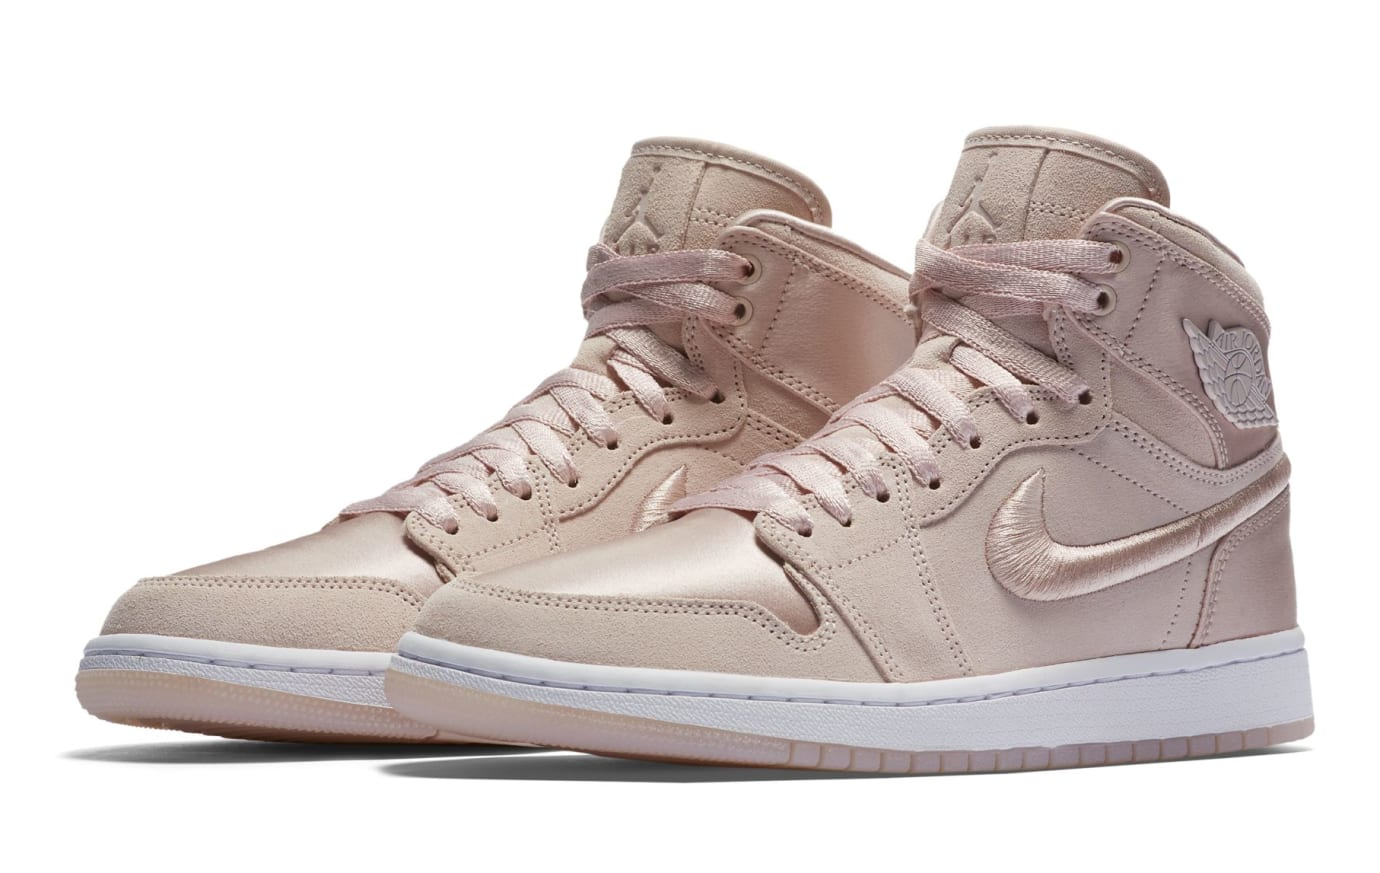 Air Jordan 1 Summer of High 'Silt Red' Silt Red/White-Metallic Gold (Pair)